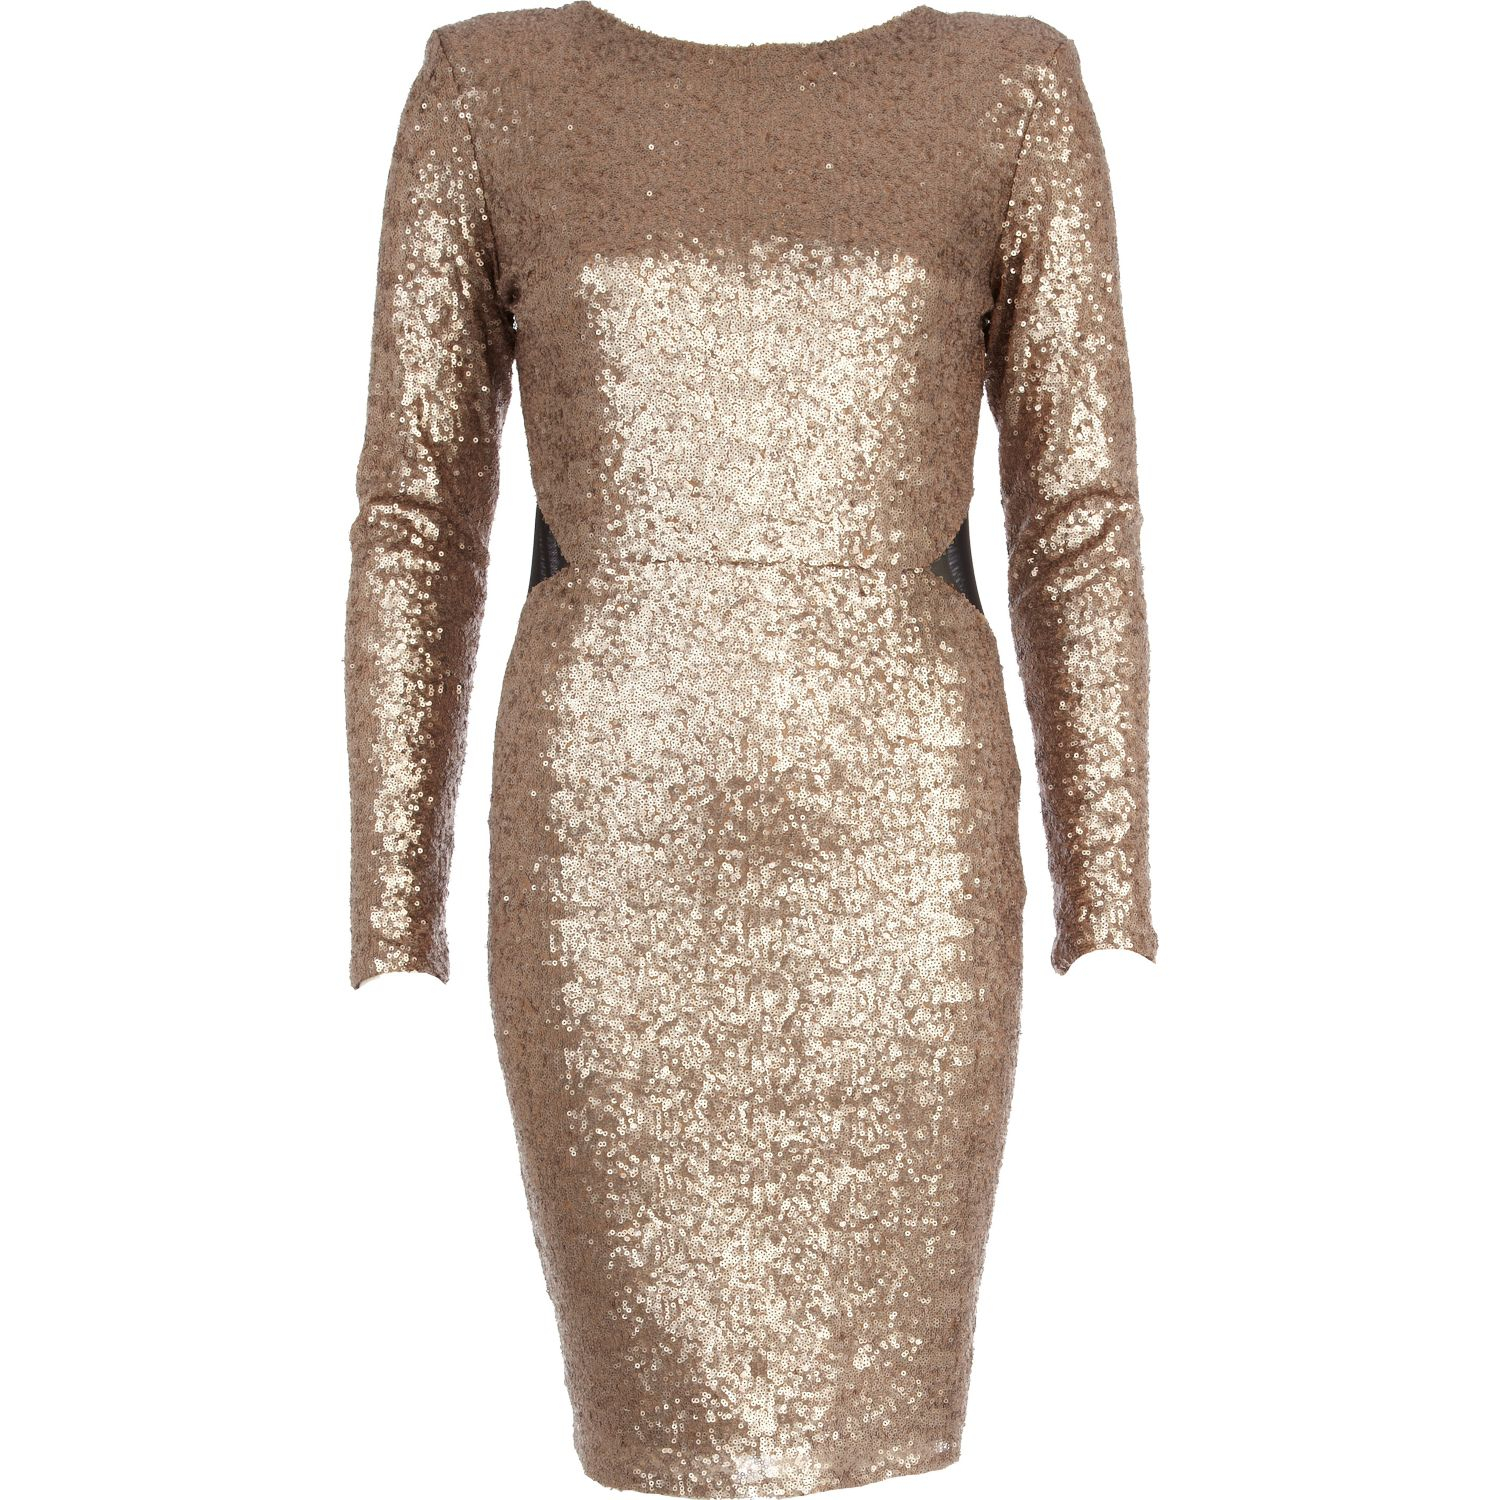 c90d9005 Black And Gold Sequin Dress River Island